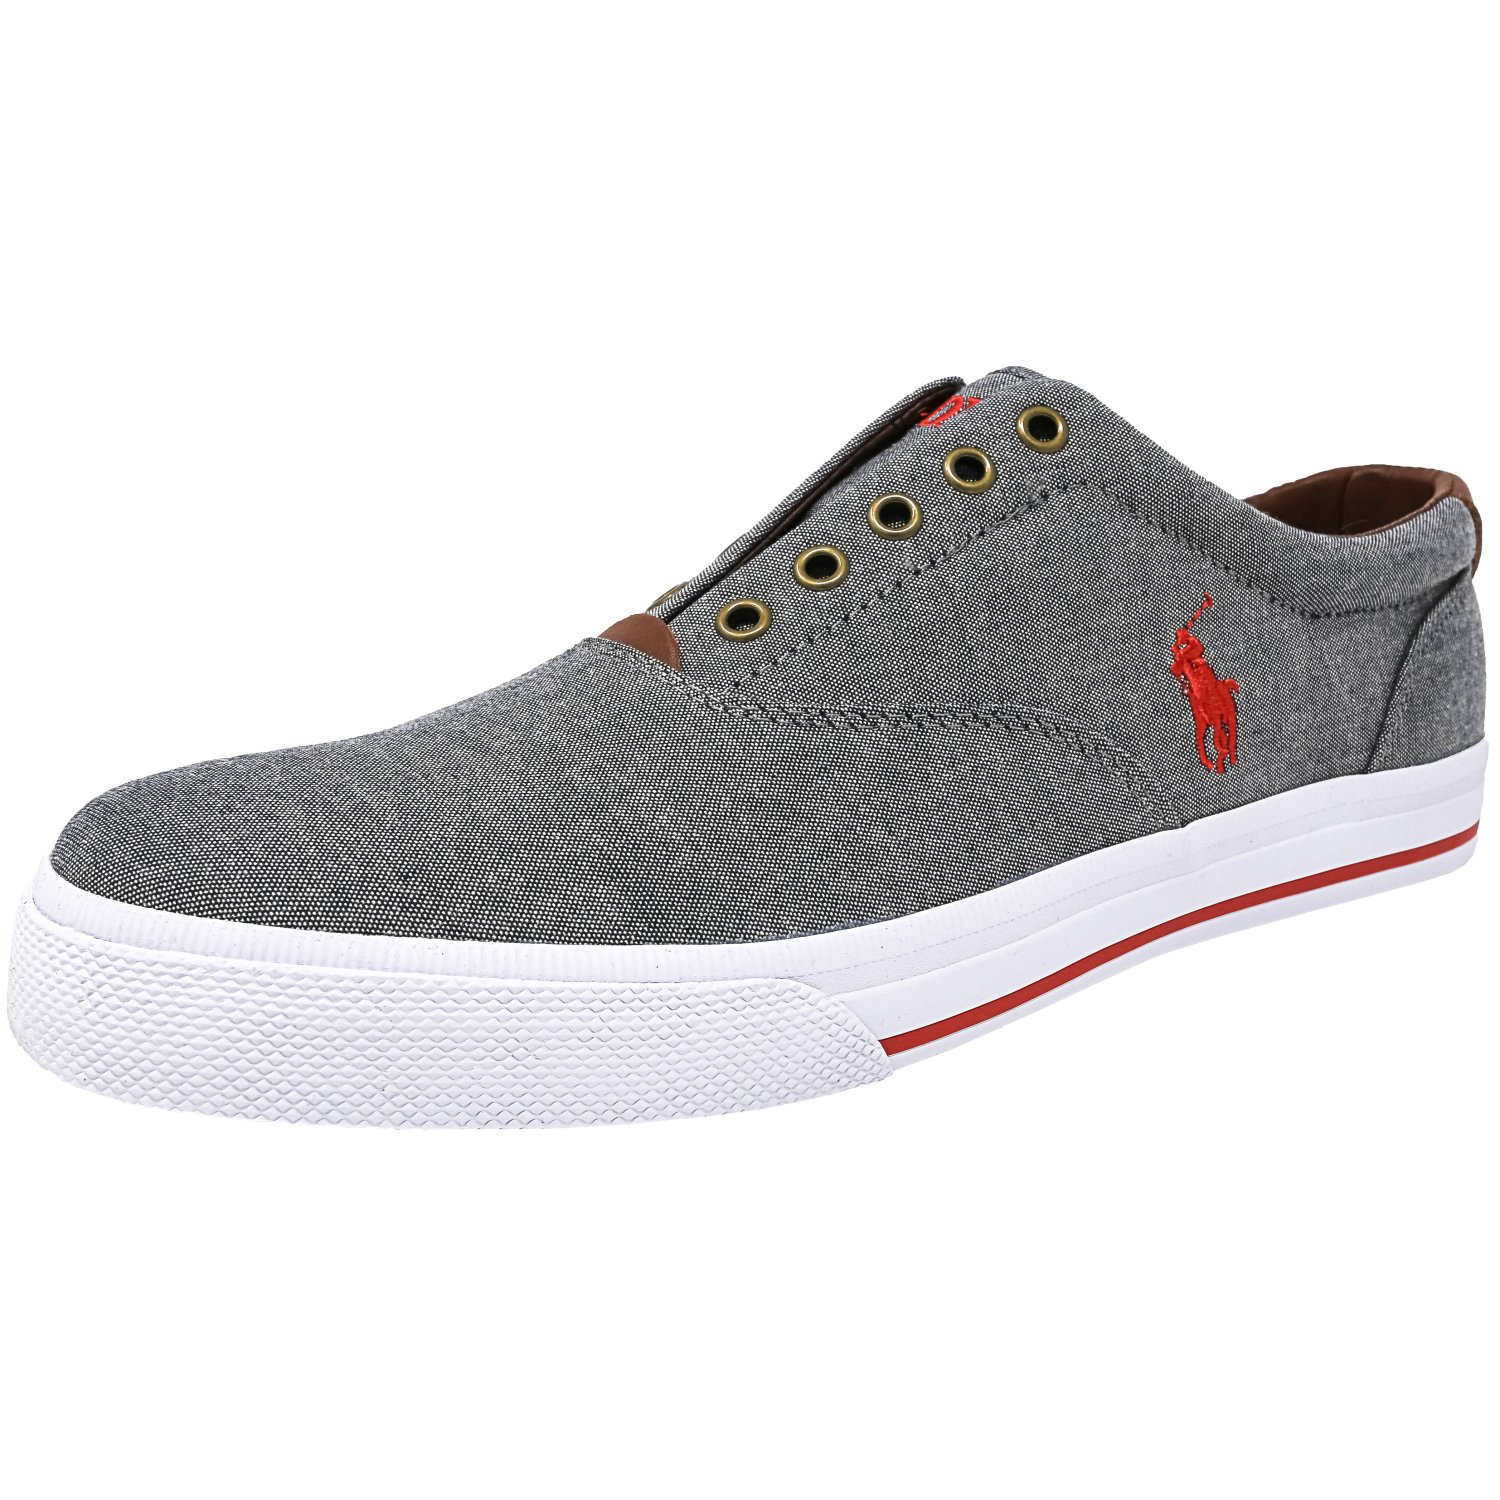 polo ralph lauren shoes vito laceless chambray sneakers with red